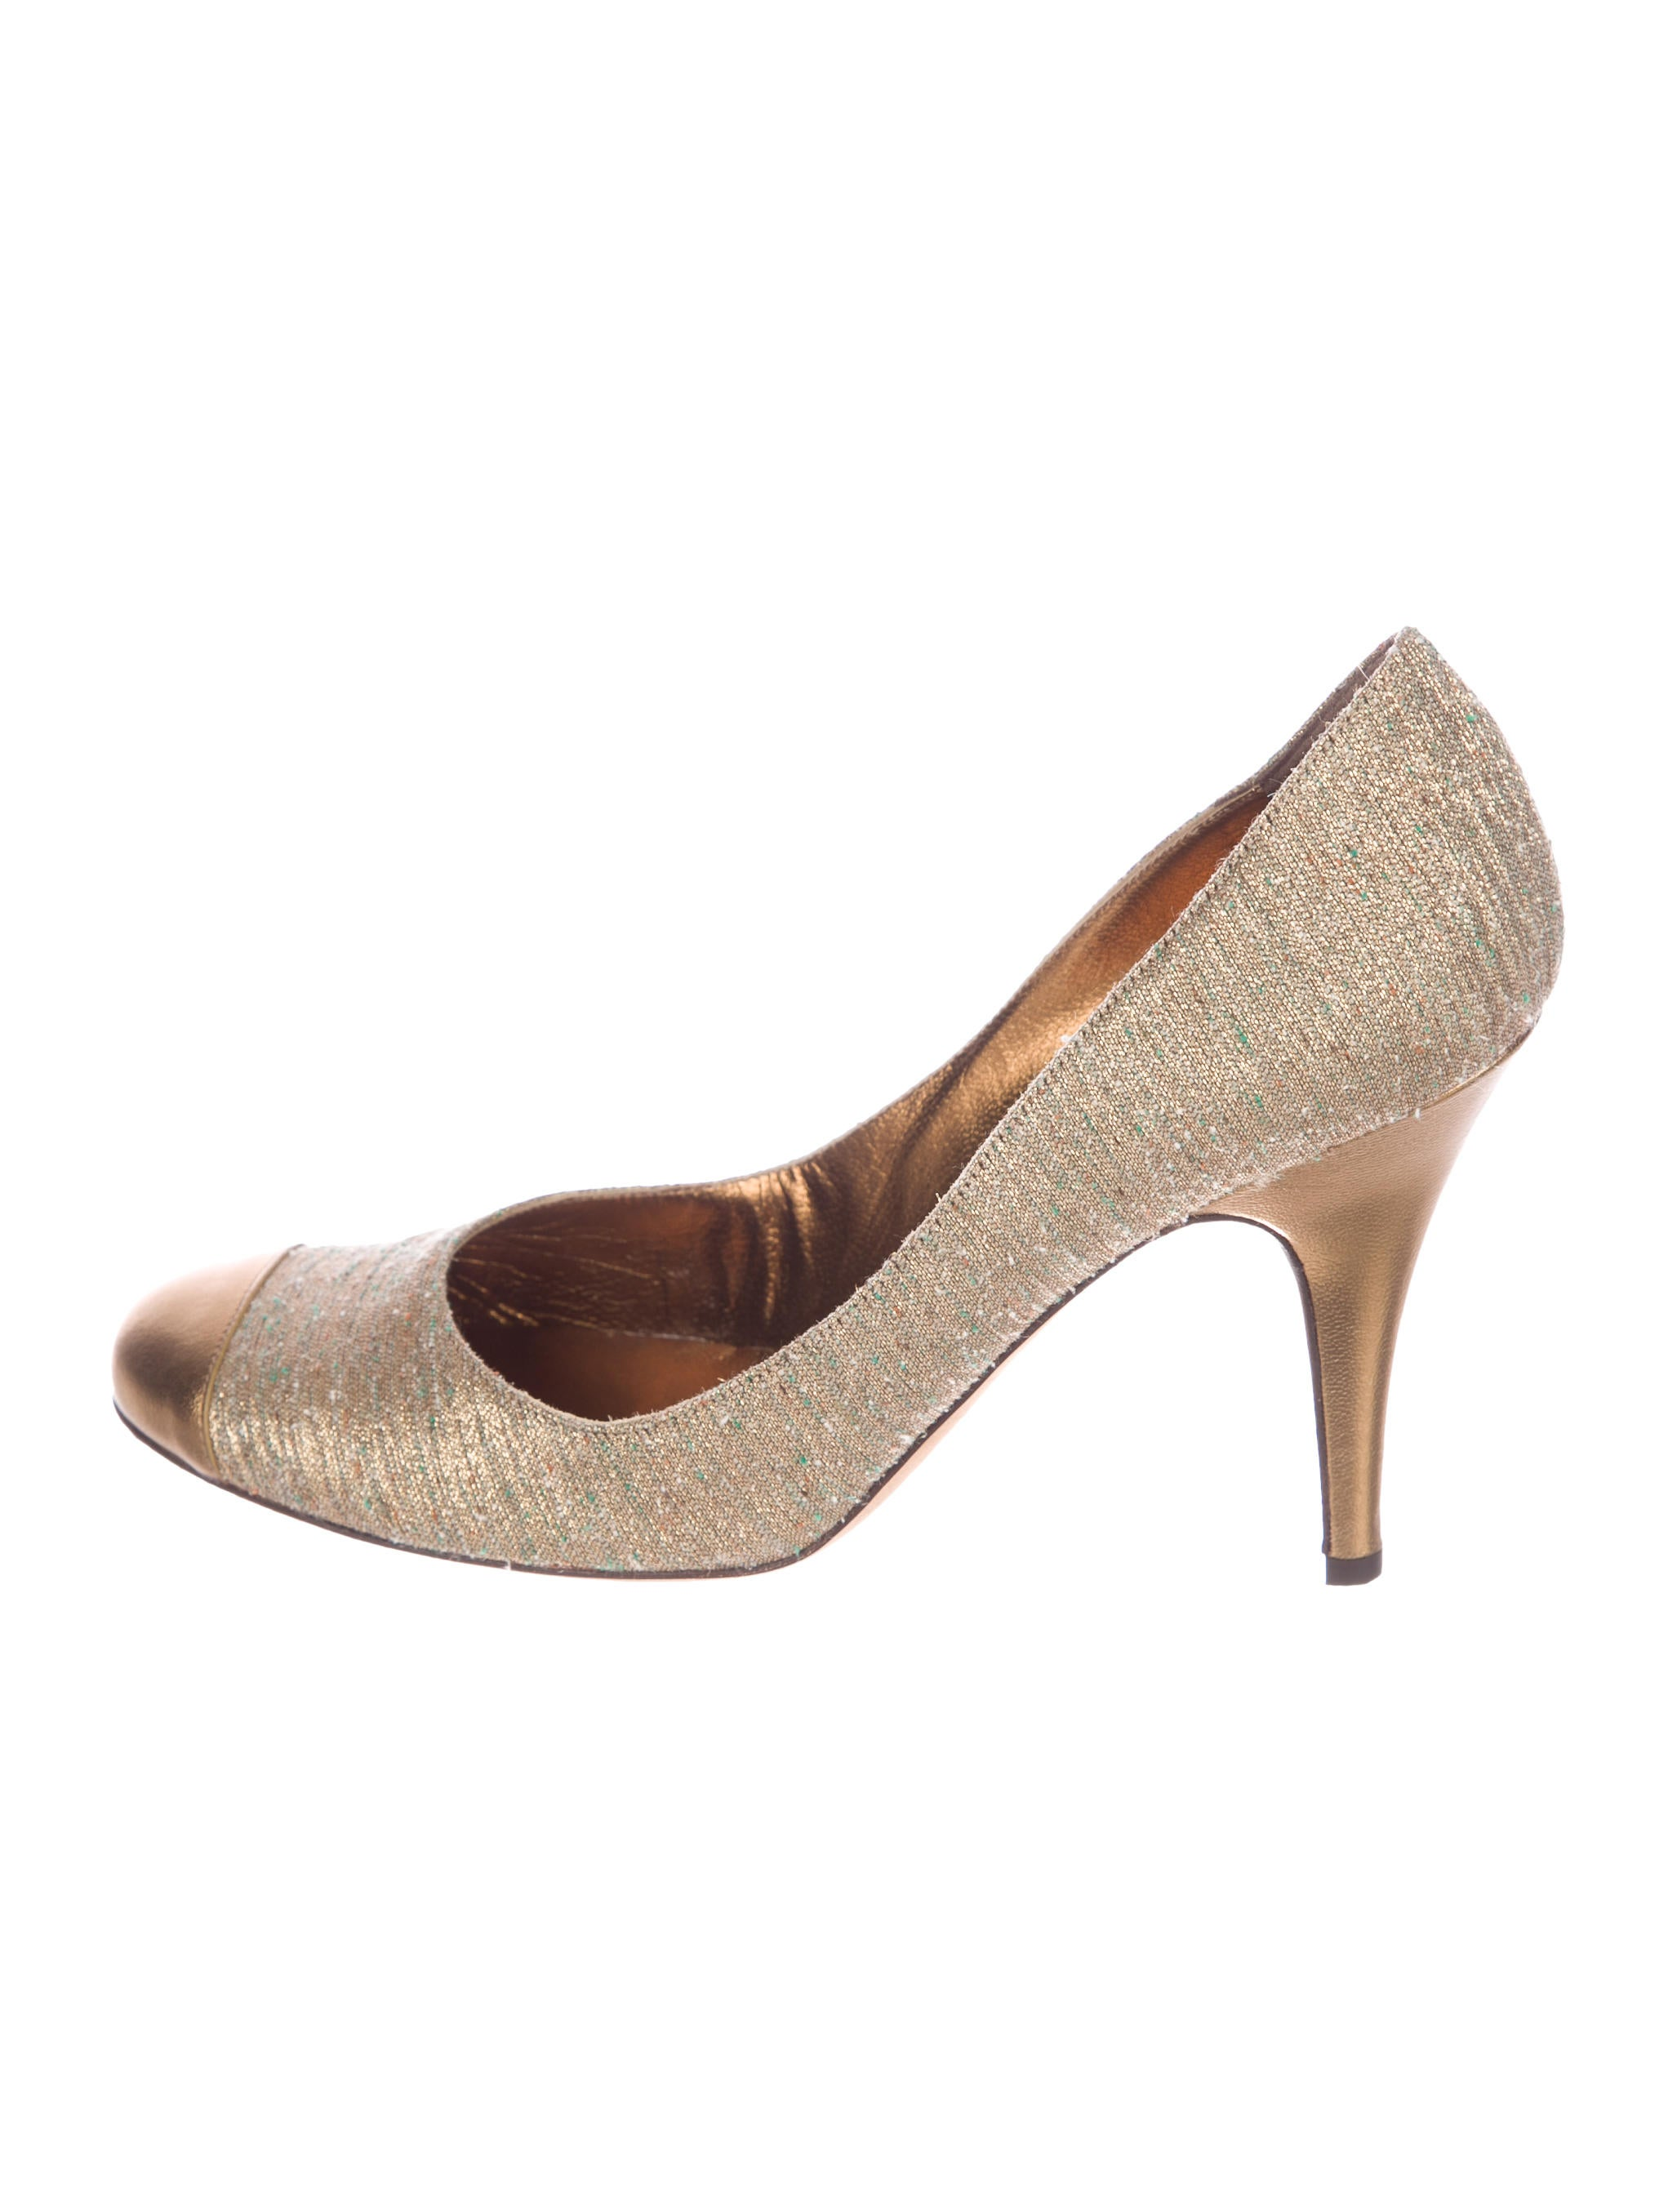 Vera Wang Tweed Cap-Toe Pumps outlet 2015 discount wholesale price on hot sale llz2co4NEd